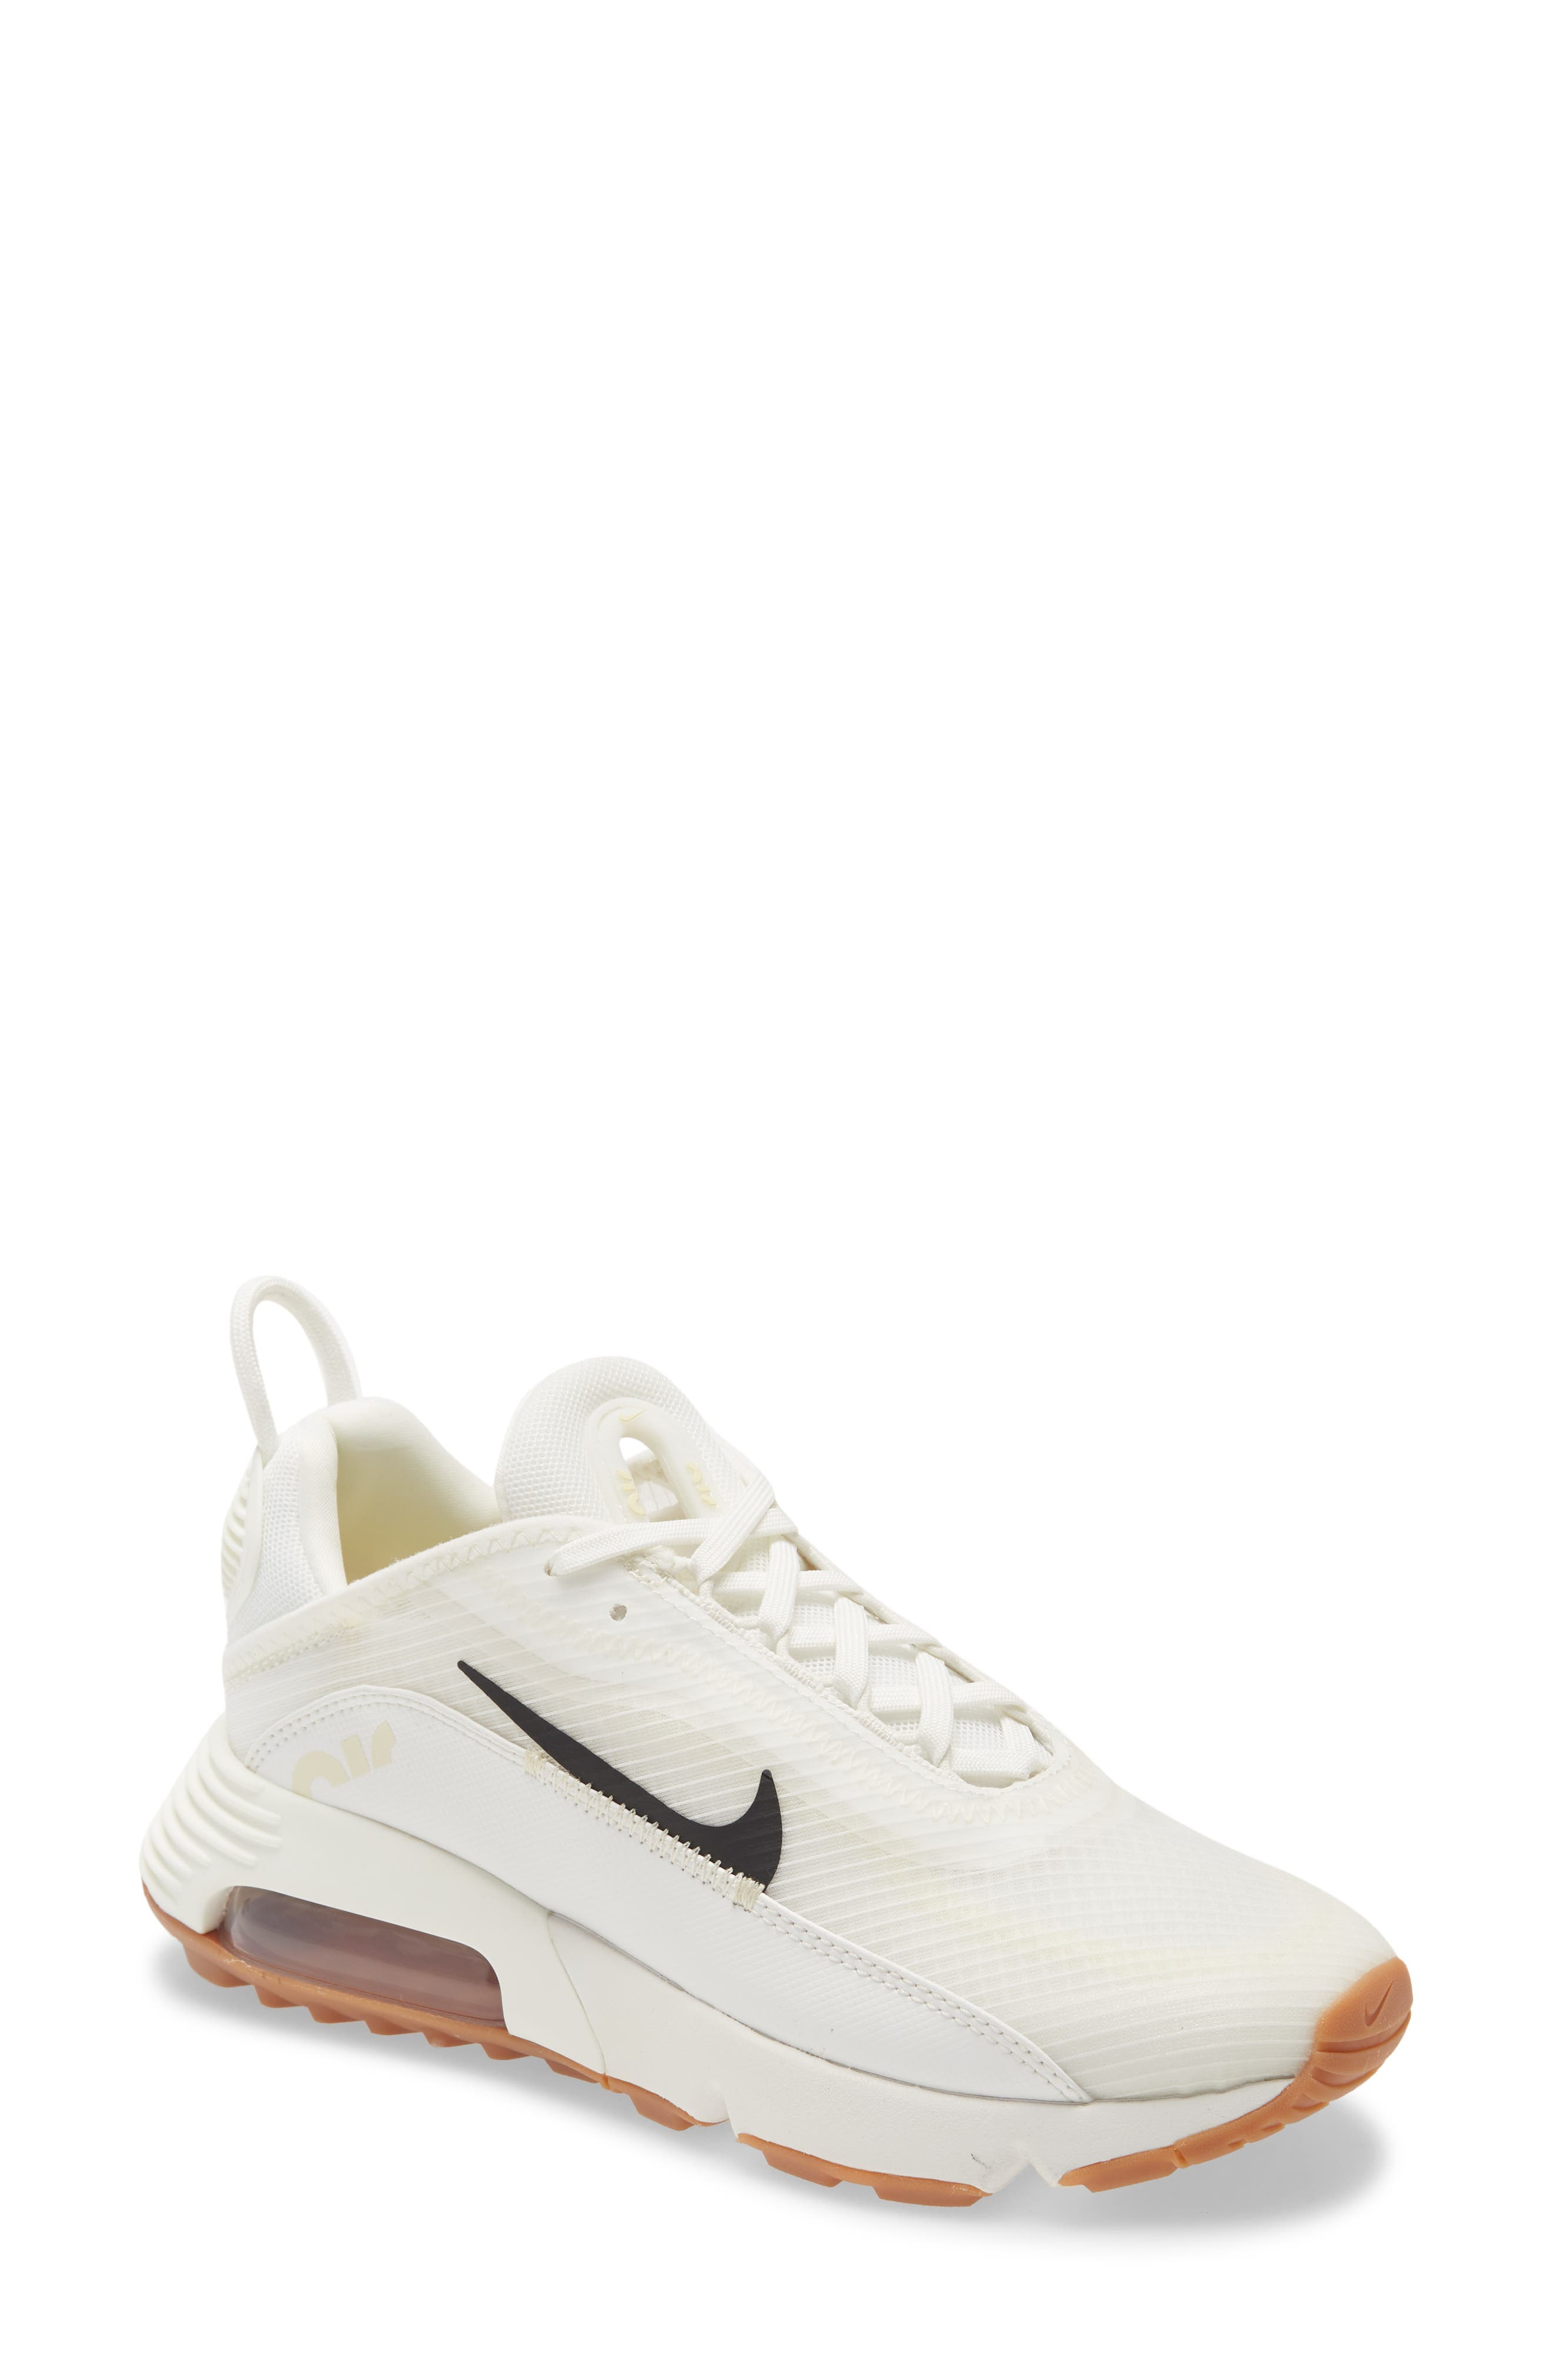 Women's Nike Shoes | Nordstrom